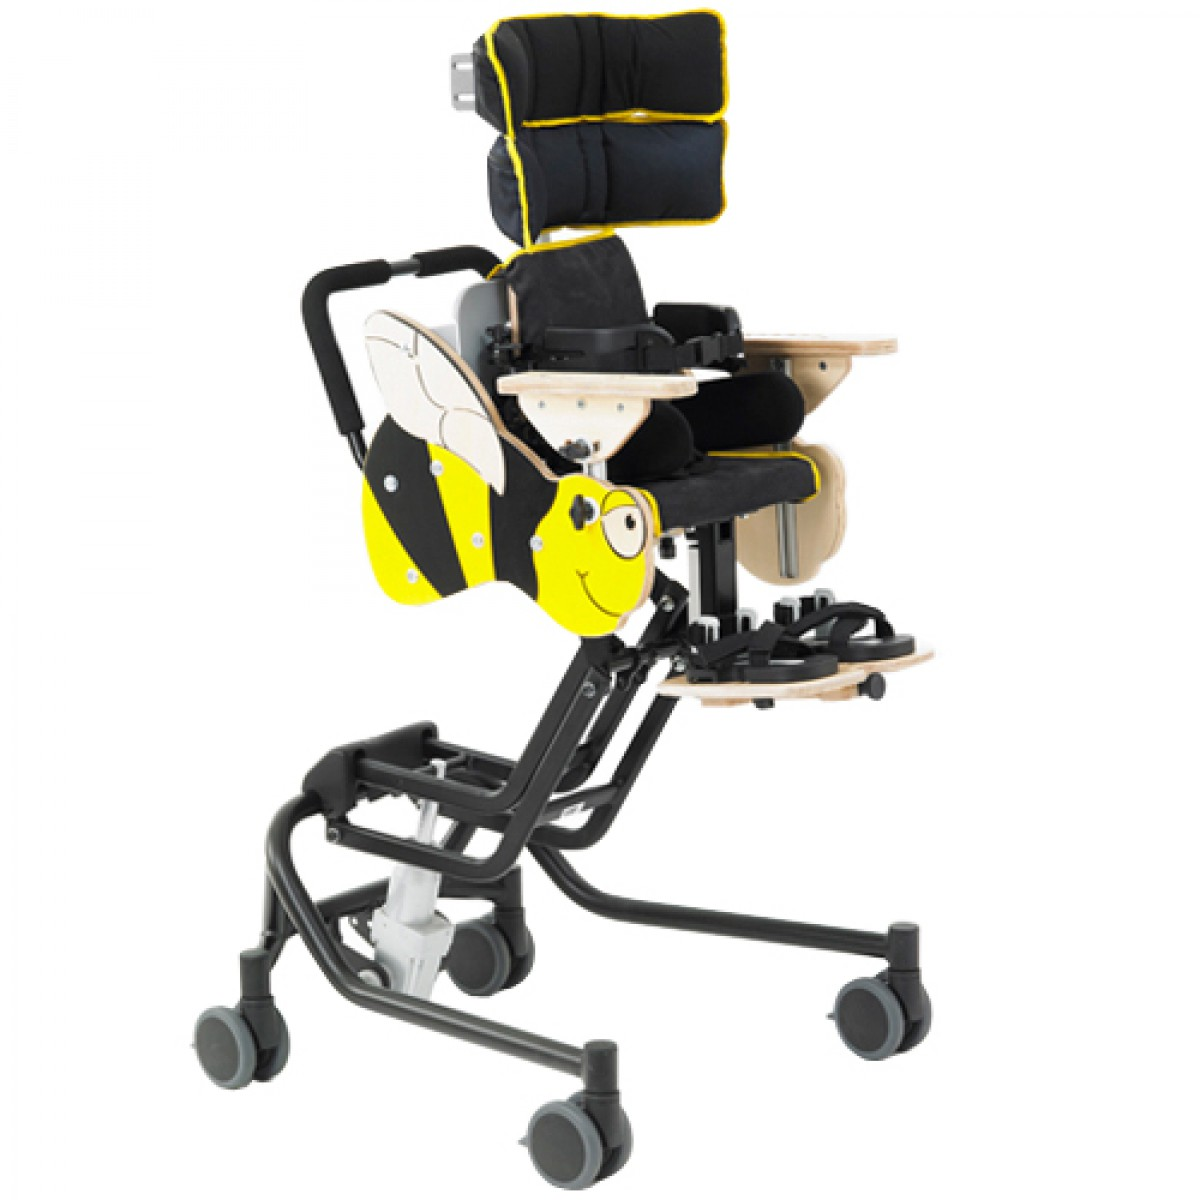 Jenx Bumblebee - Paediatric Equipment for children with Special Needs